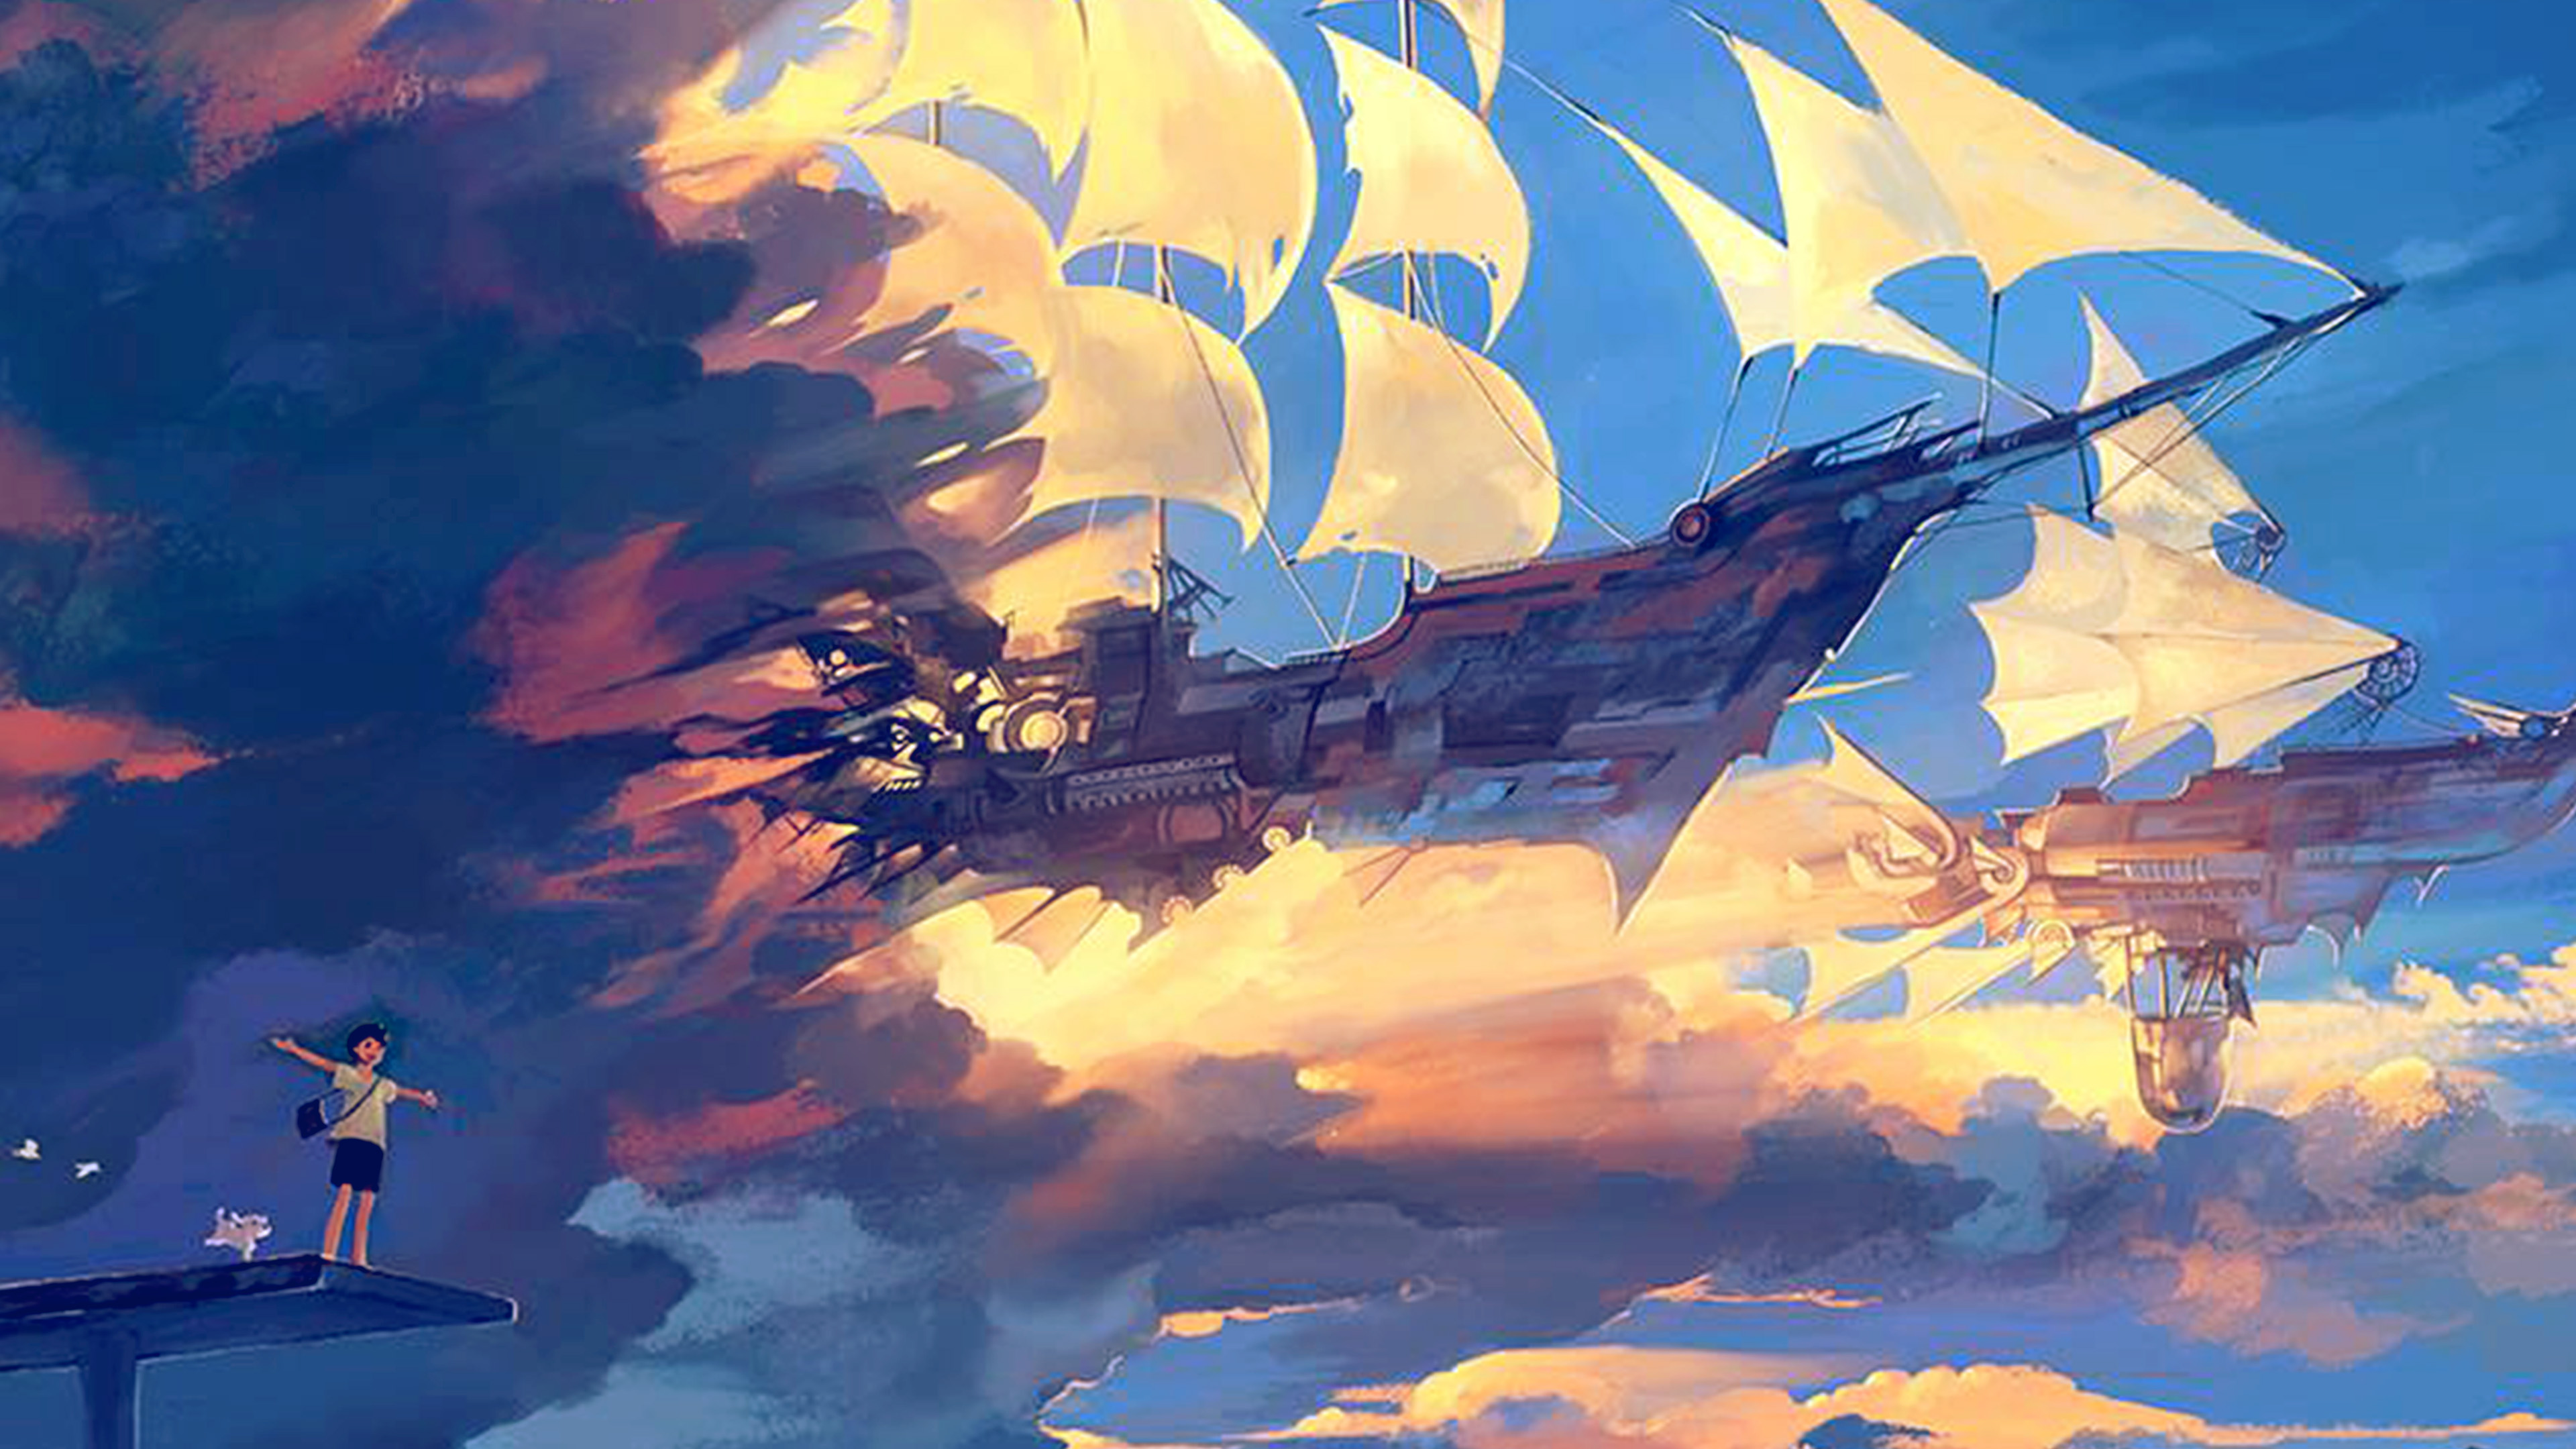 wallpaper for desktop, laptop | az68-fly-ship-anime ...